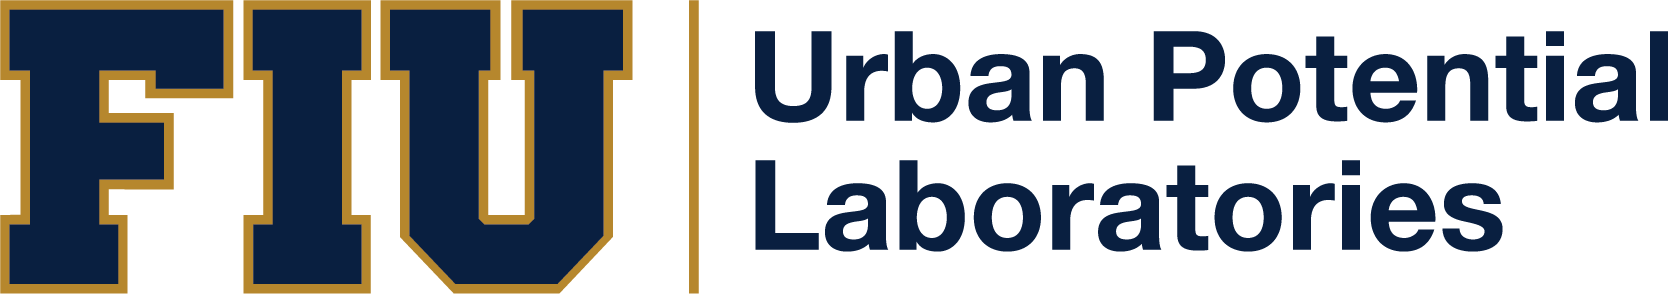 UPLabs-hrz-COLOR_(2).png